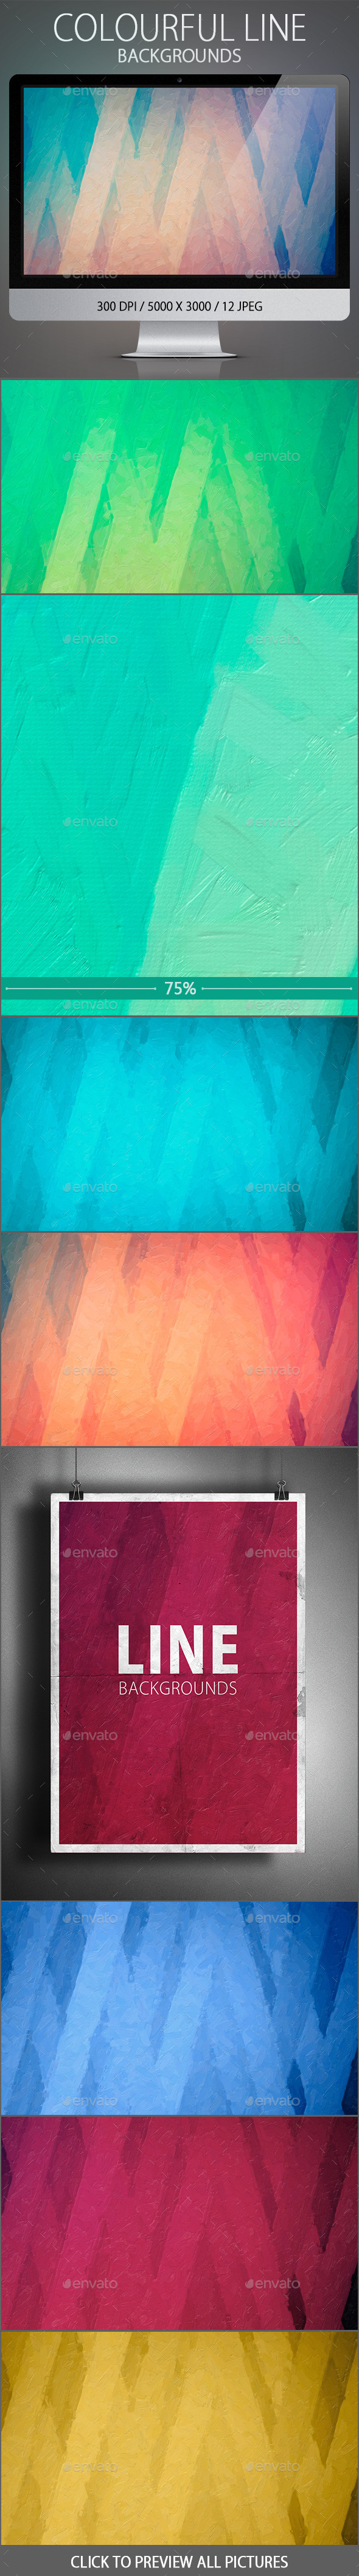 GraphicRiver Colourful Line Backgrounds 10807149